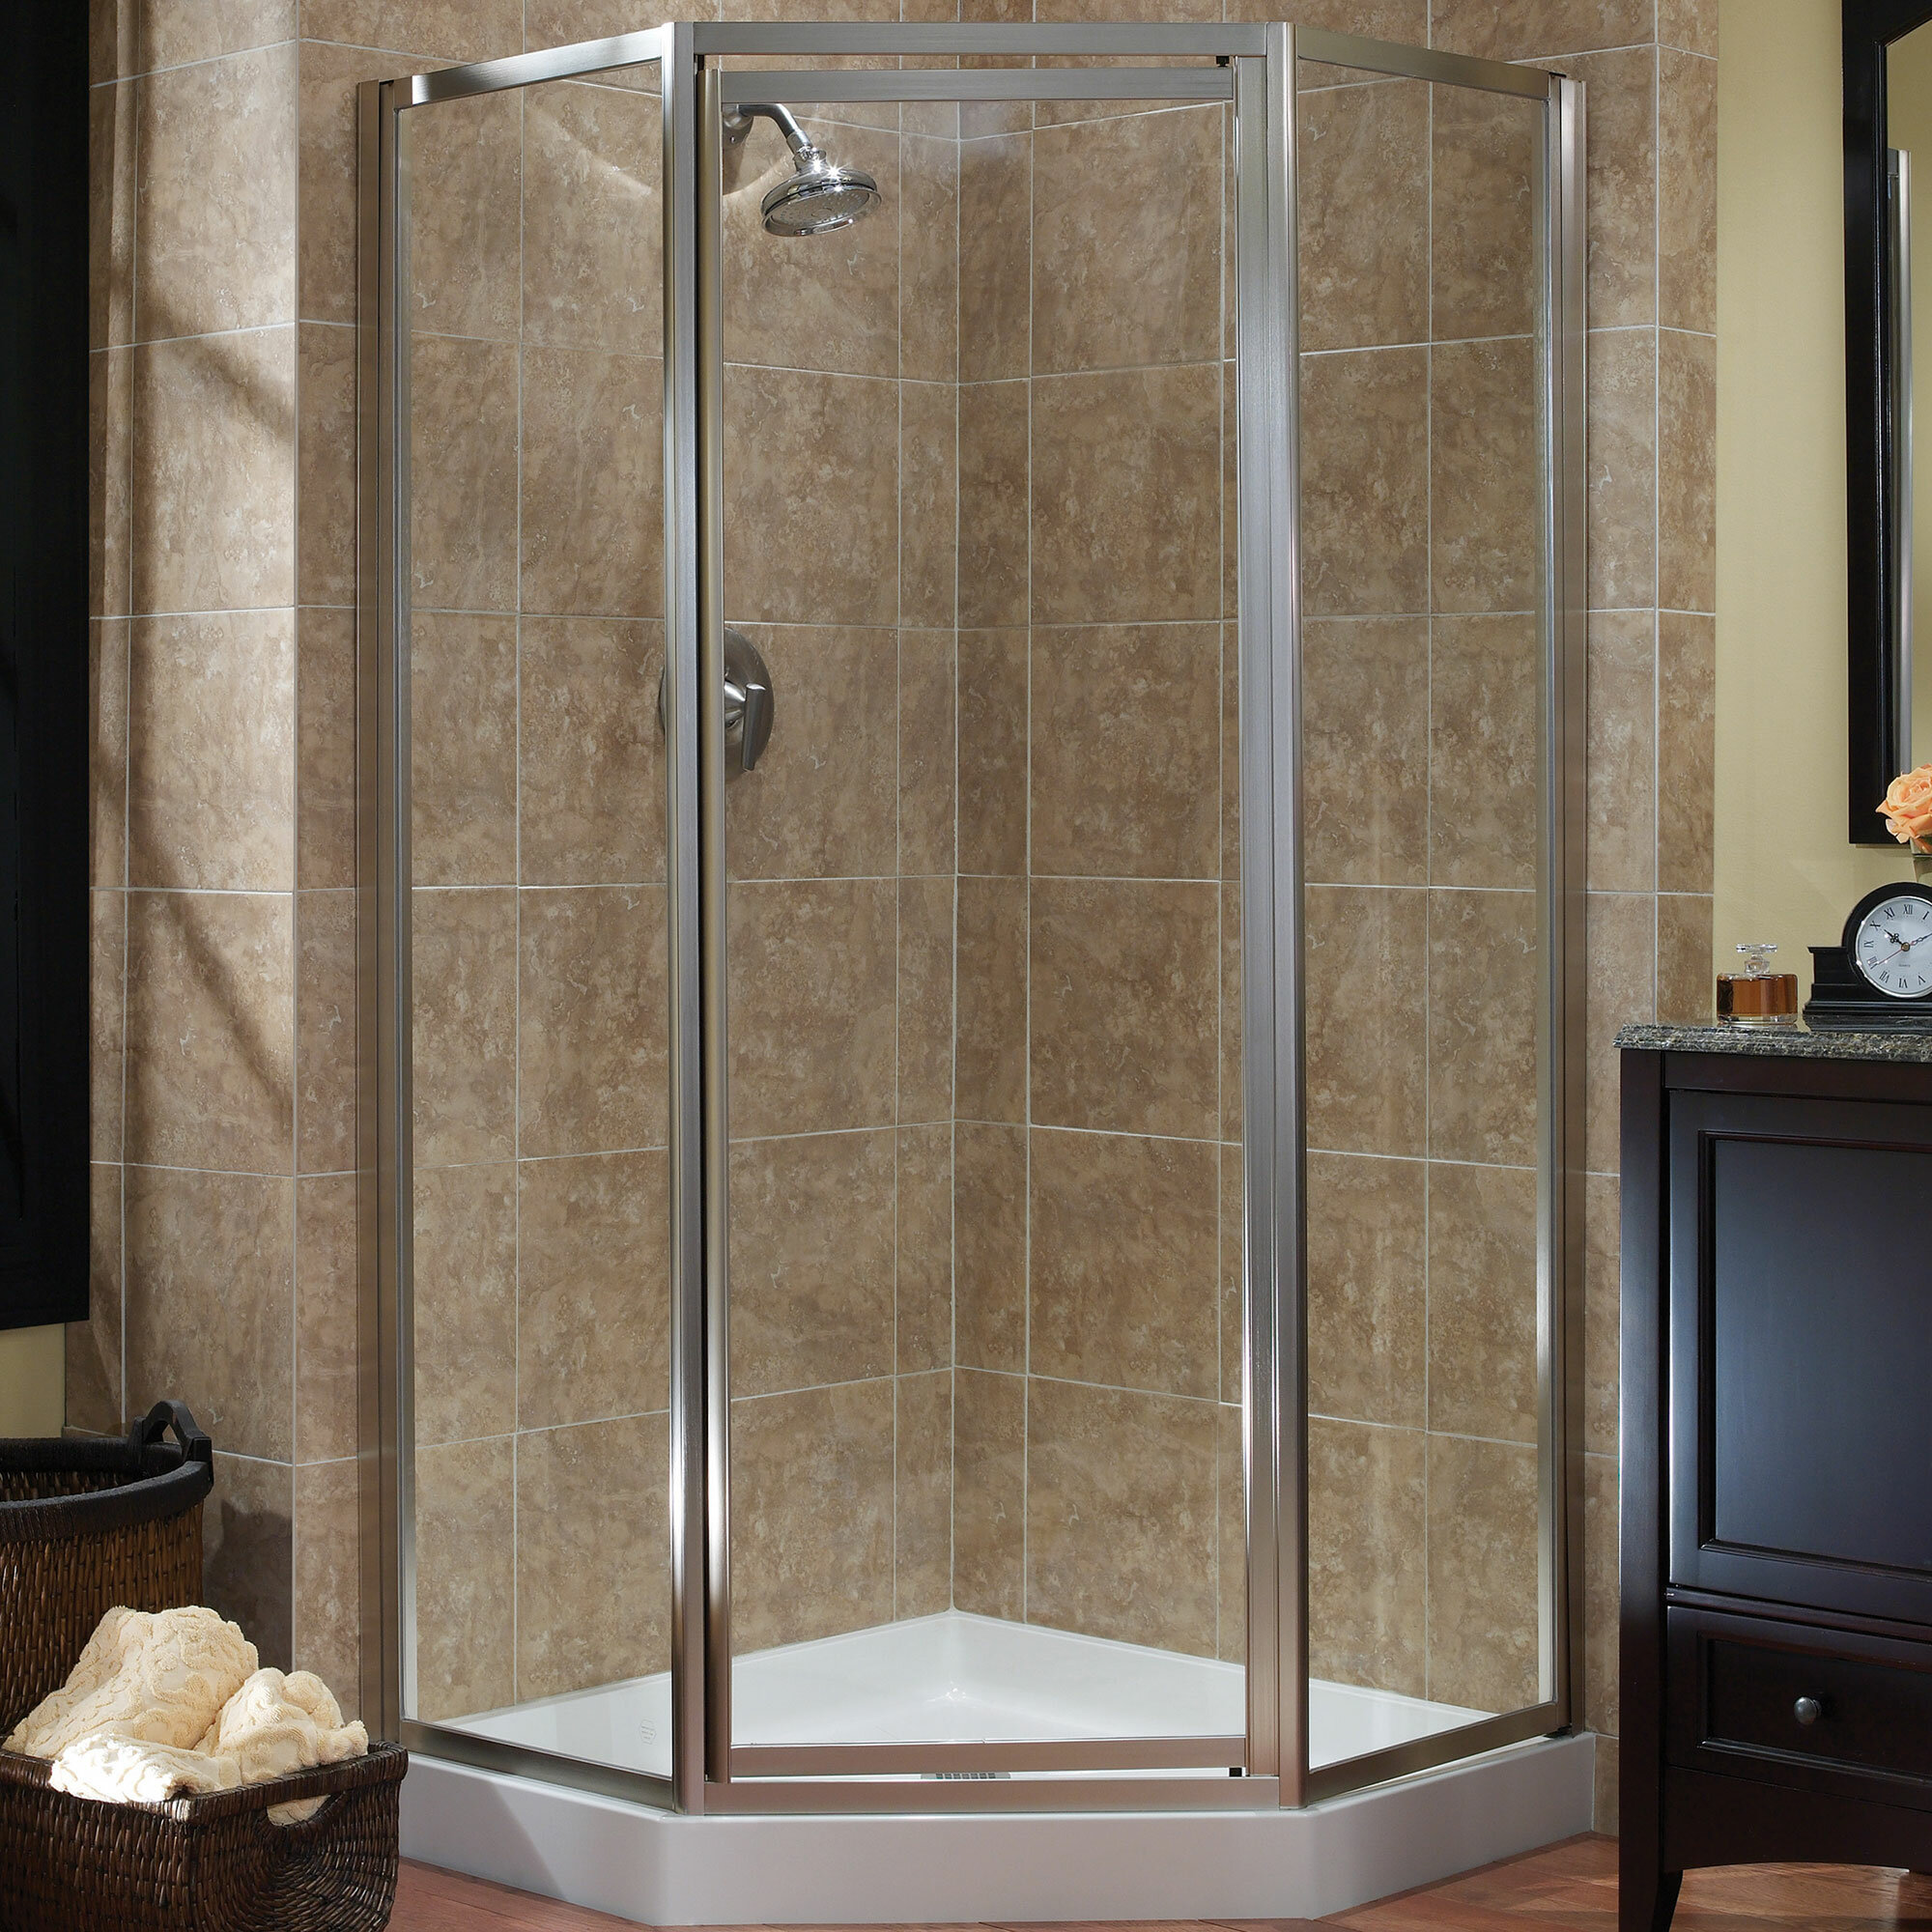 Details About Hazelwood Home Chase 16 75 X 70 Neo Angle Shower Enclosure Silver Clear Glass